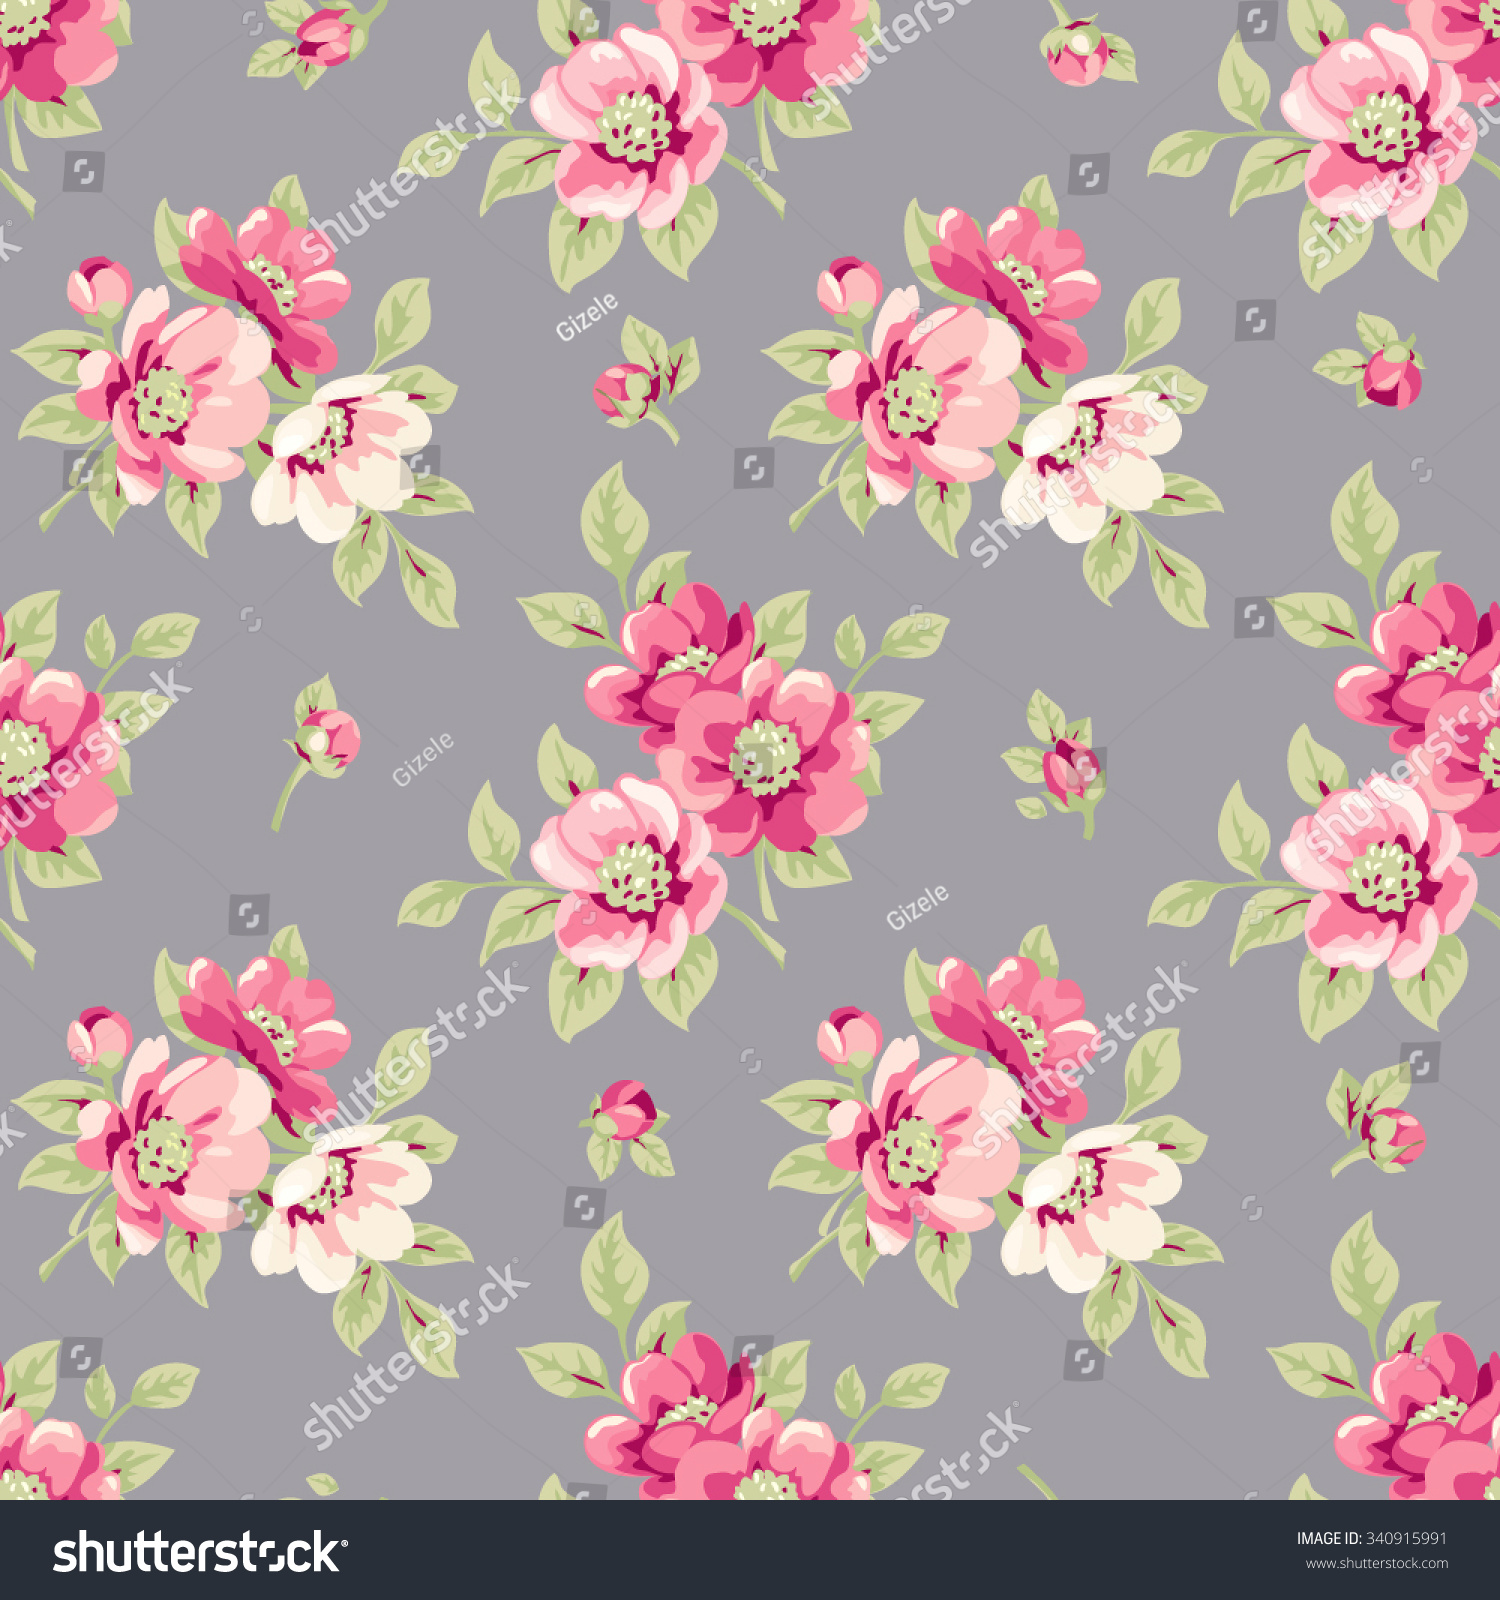 Seamless Floral Pattern Vintage Seamless Wallpaper Stock Vector